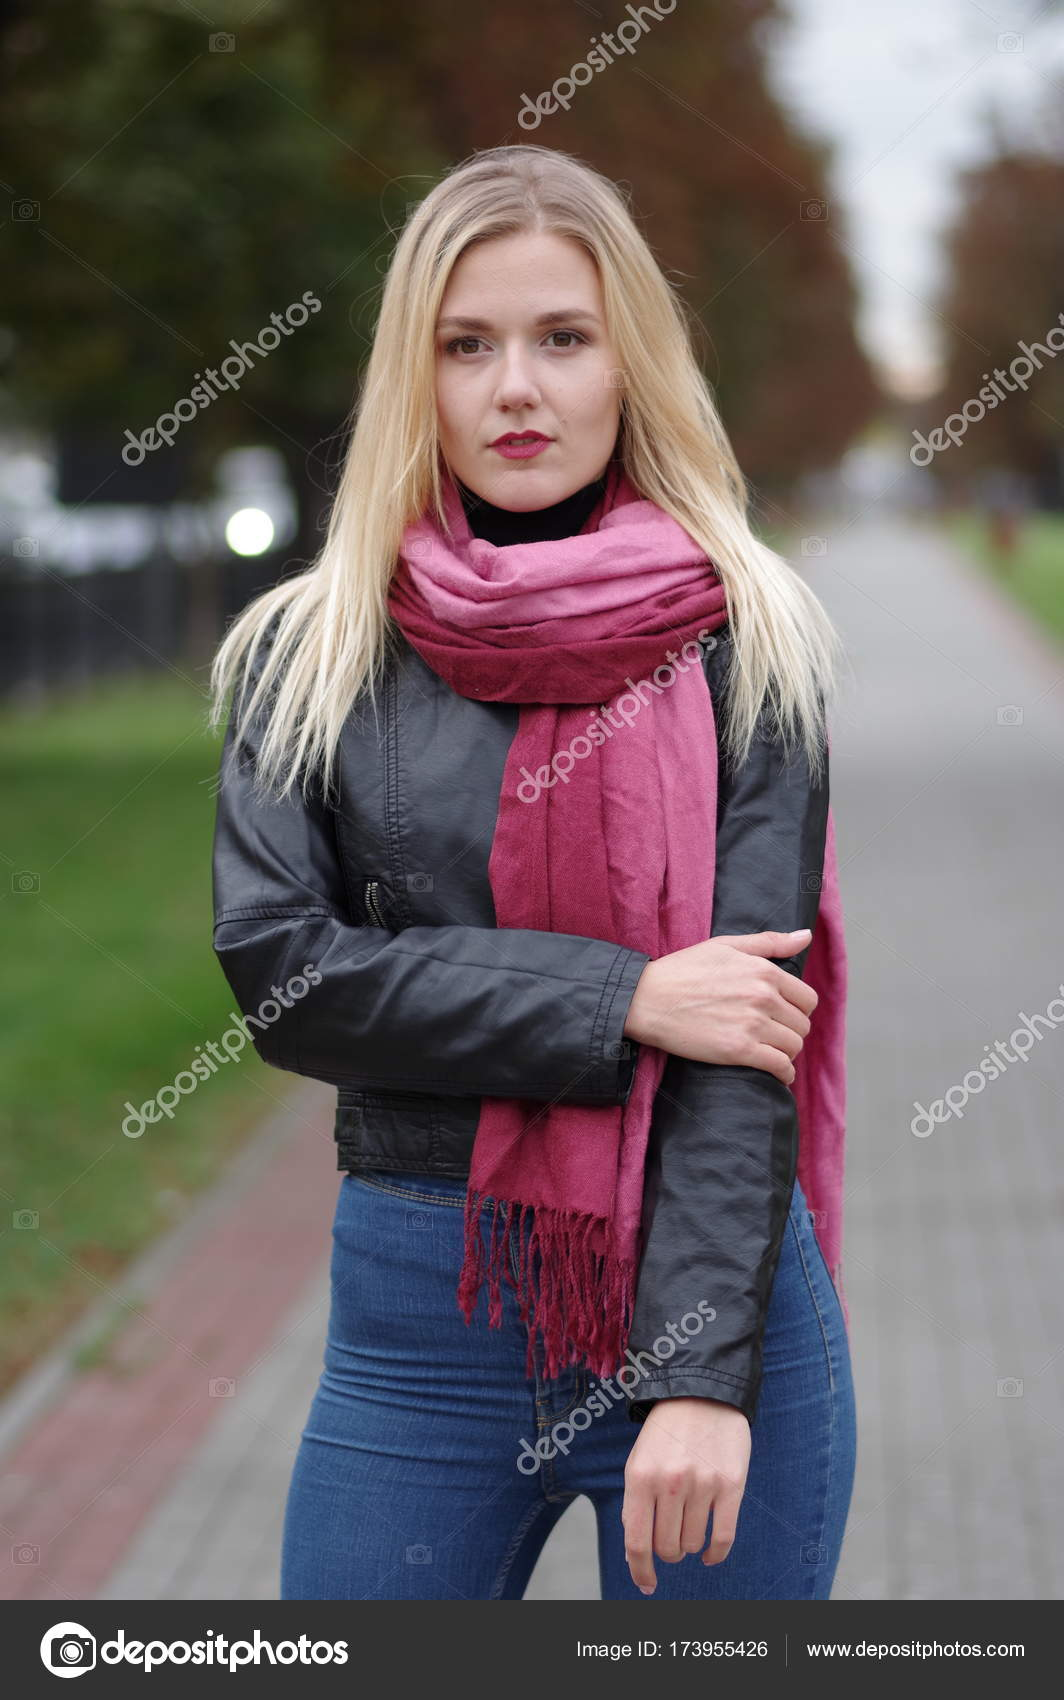 a85a29a08 Beautiful young girl in leather jacket